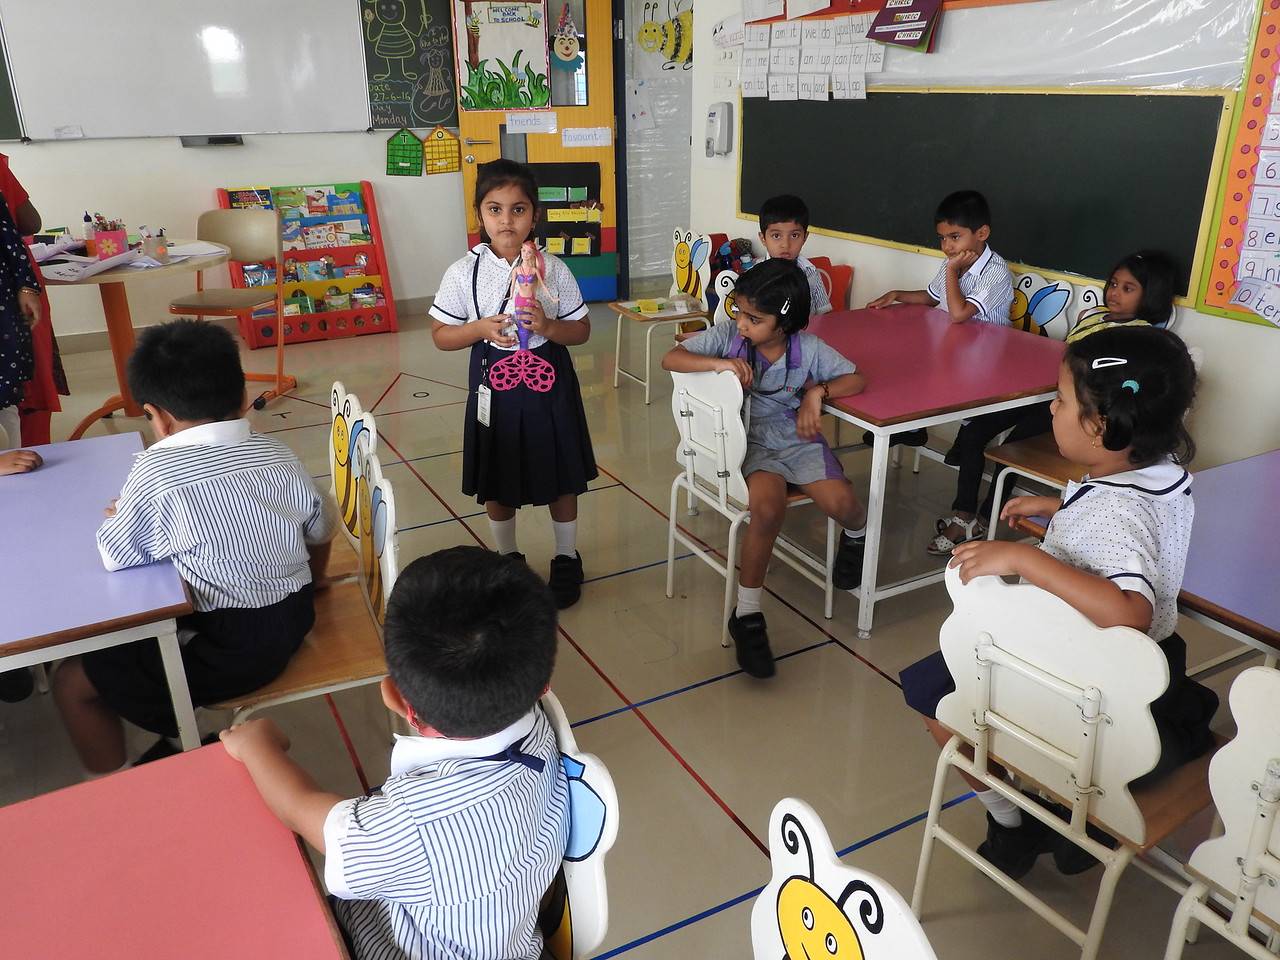 SHOW AND TELL ACTIVITY